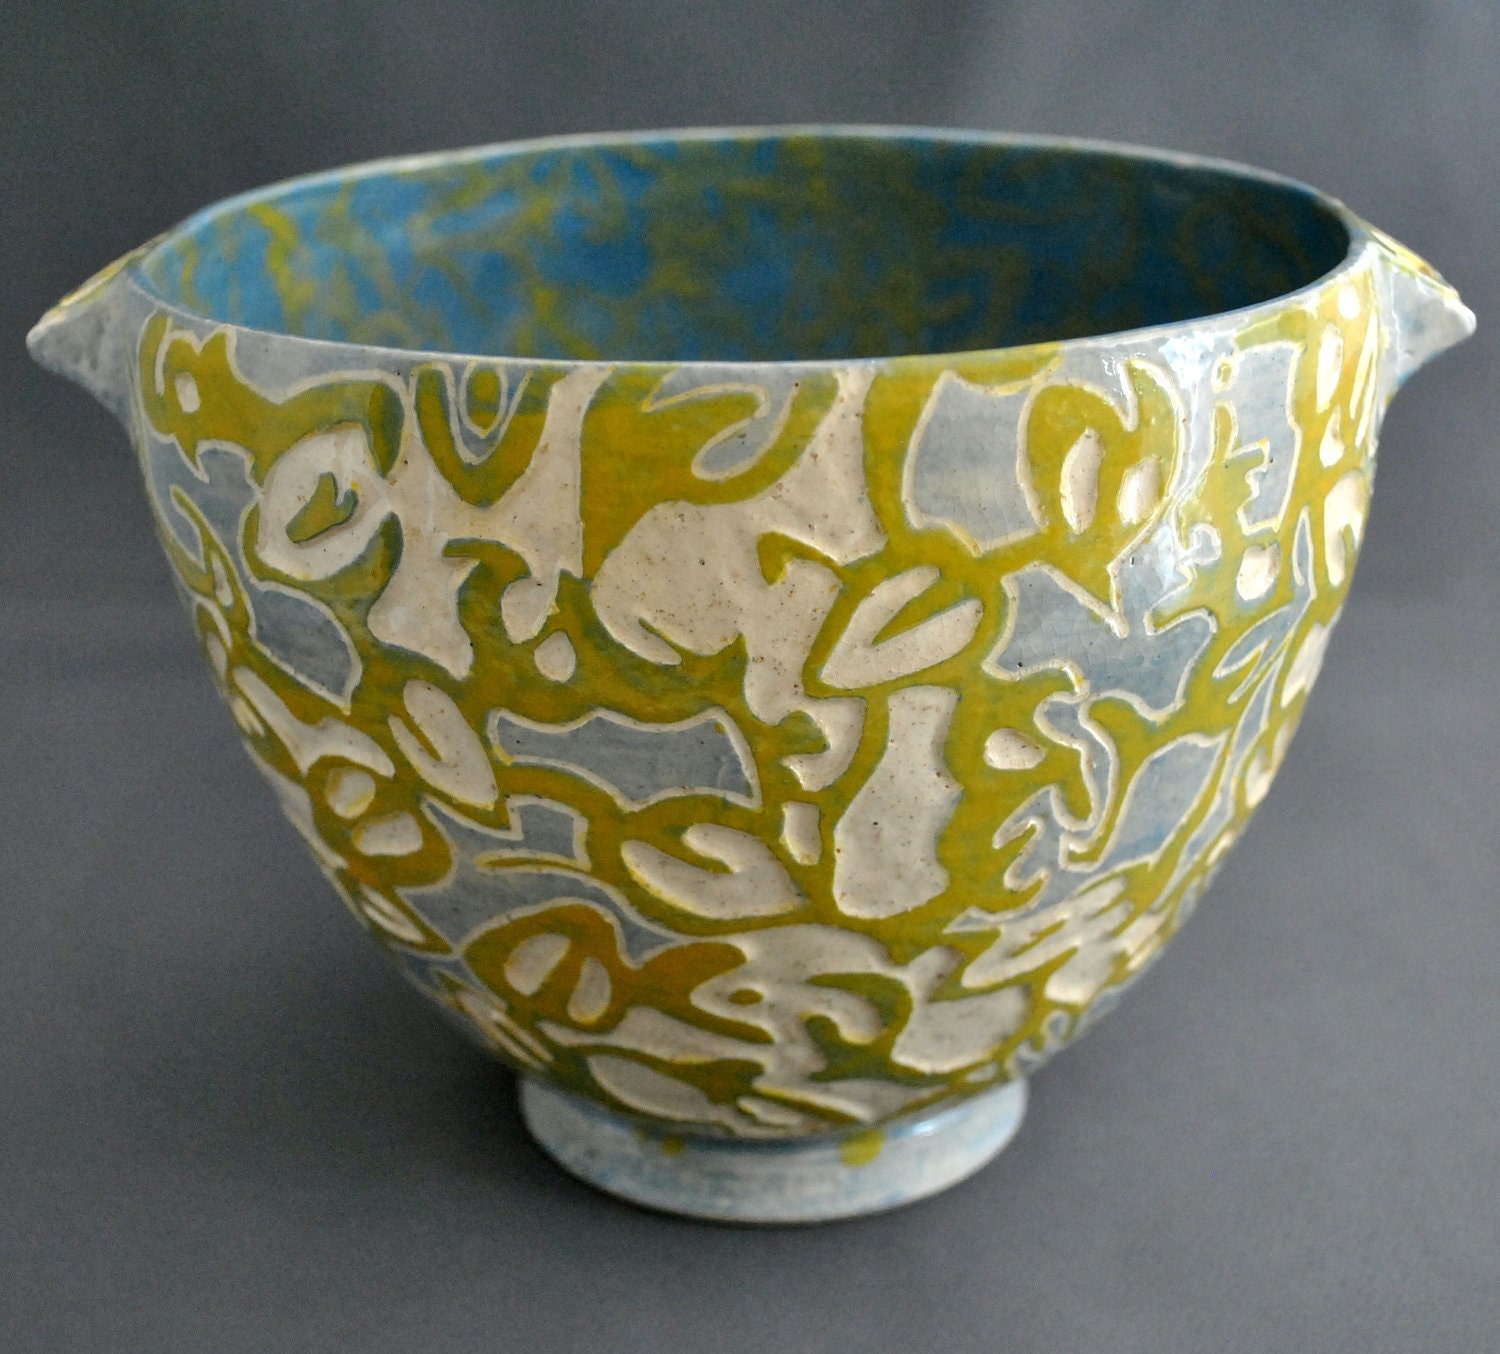 Shade patterns ooak hand made sgraffito stoneware by